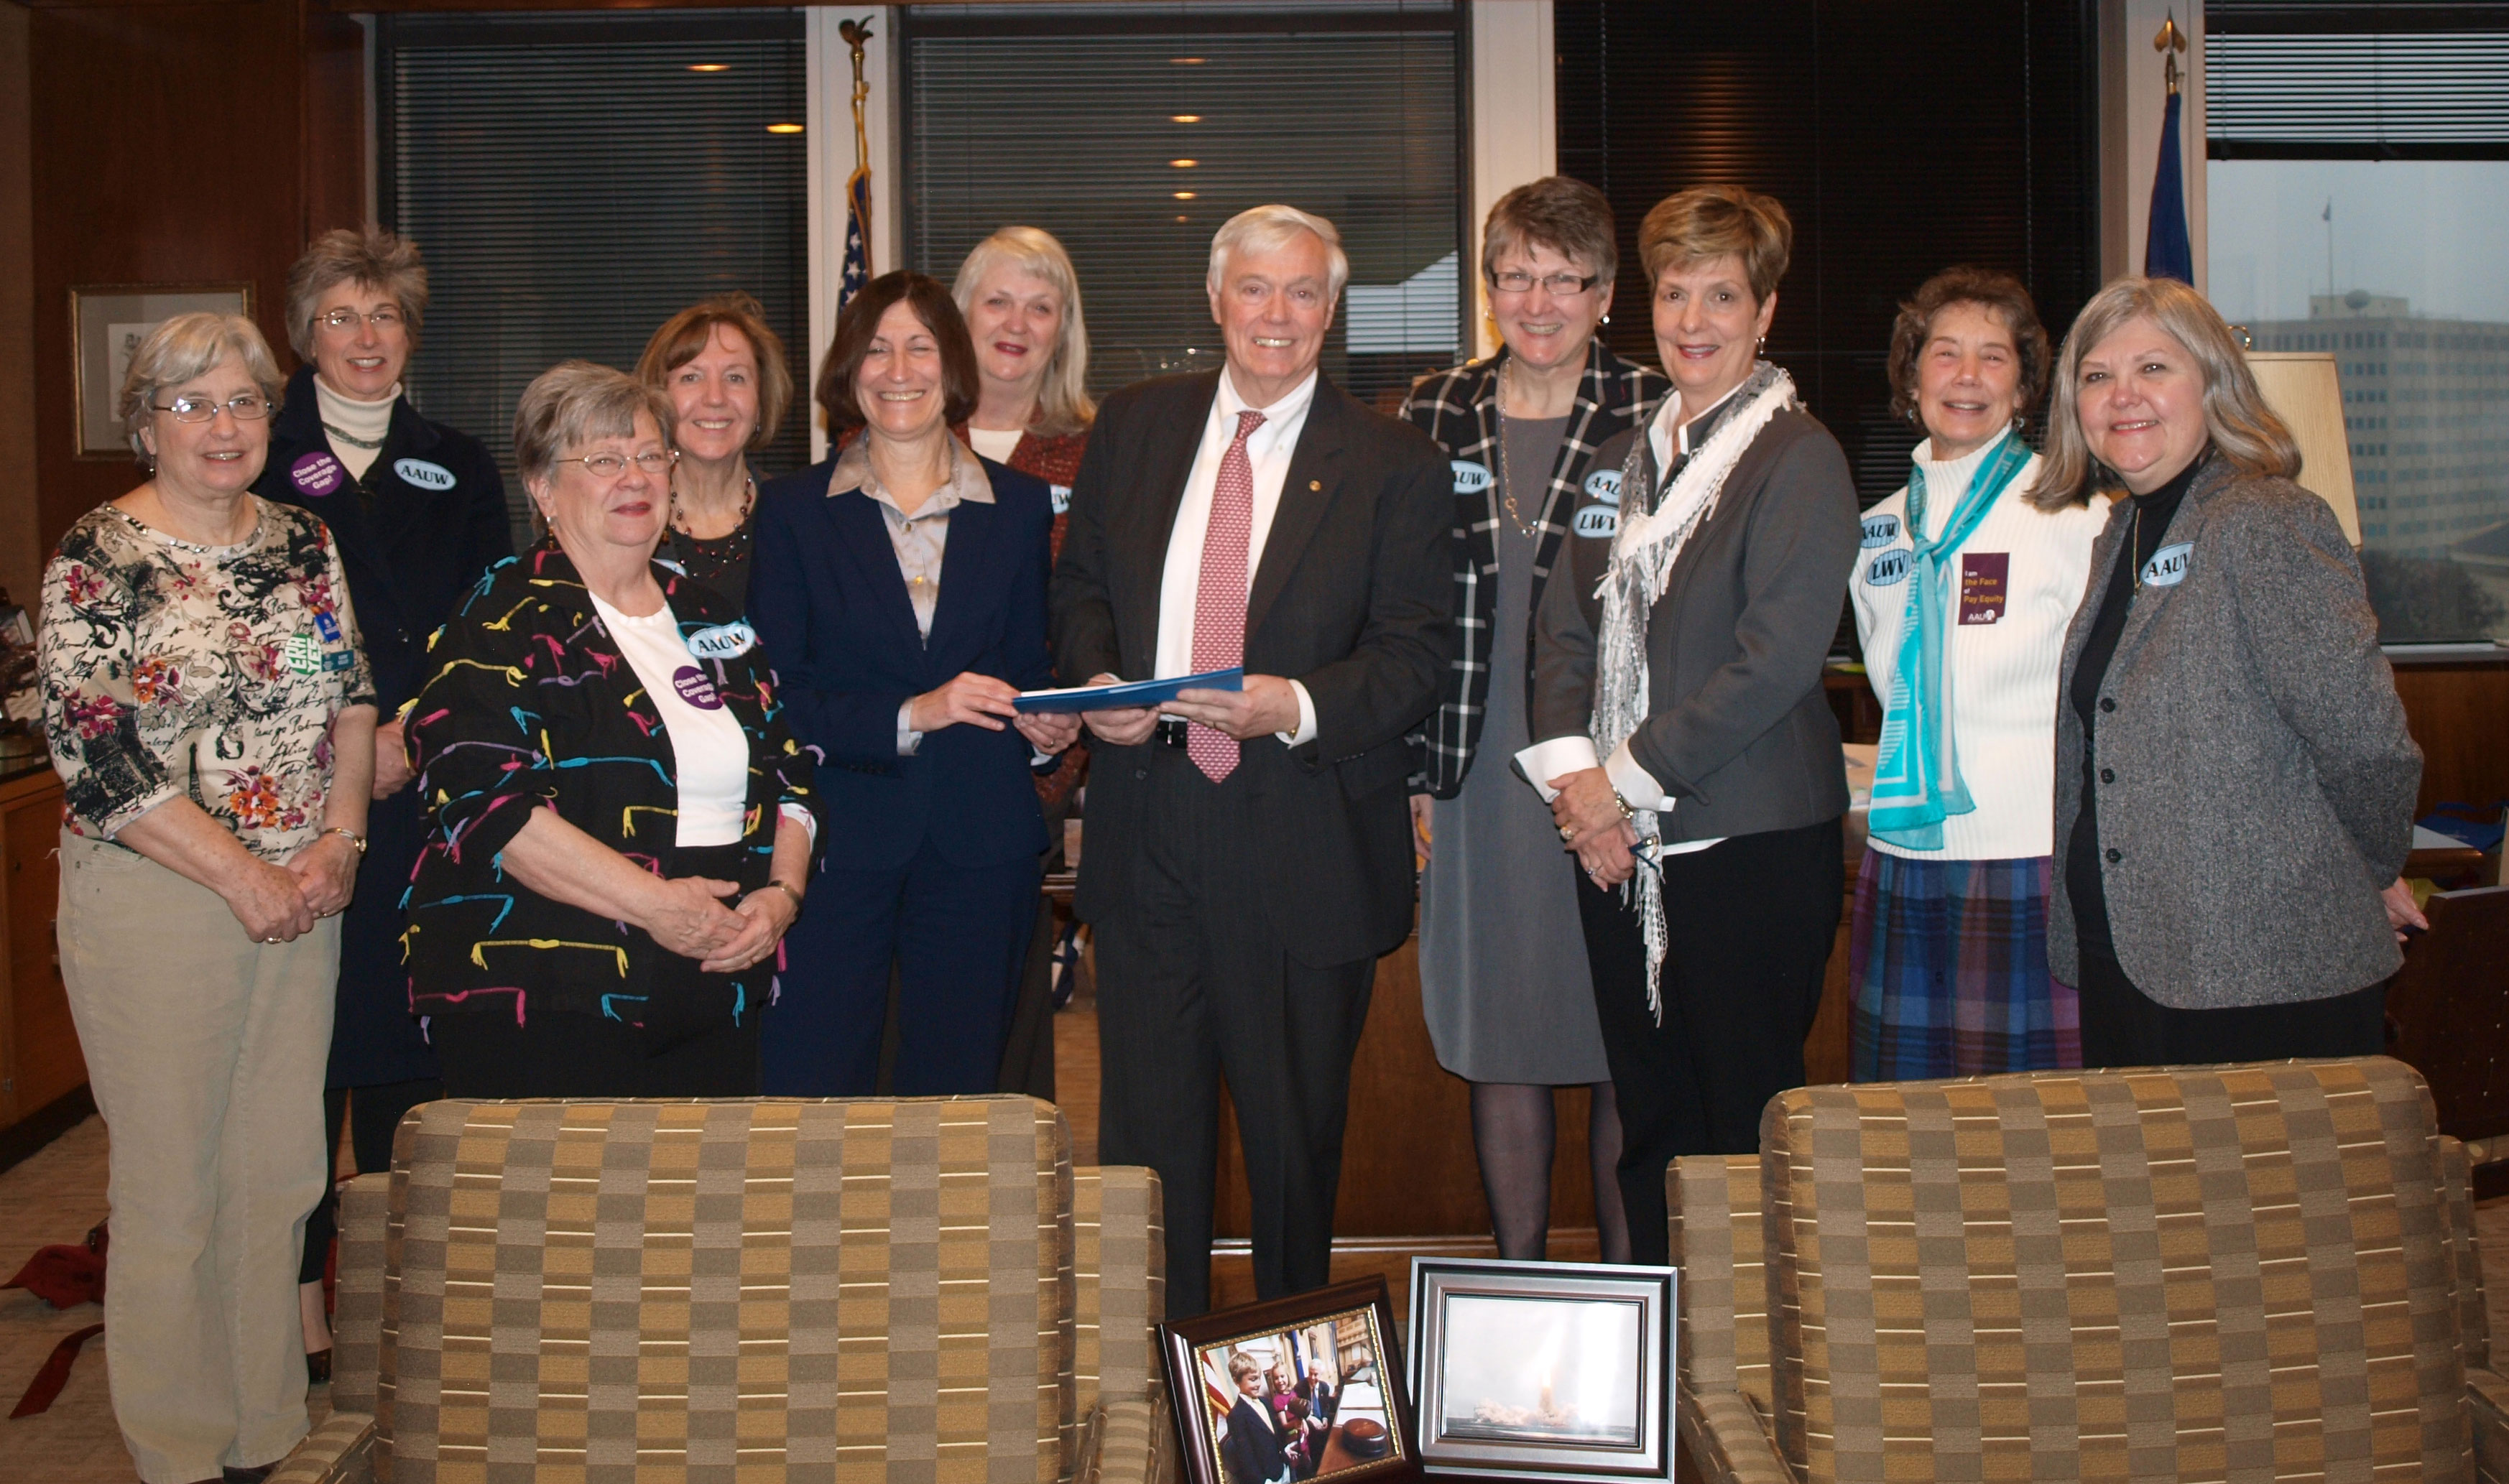 Speaker of the Virginia House of Delegates William J. Howell receives our Equal Pay Petition for the House.